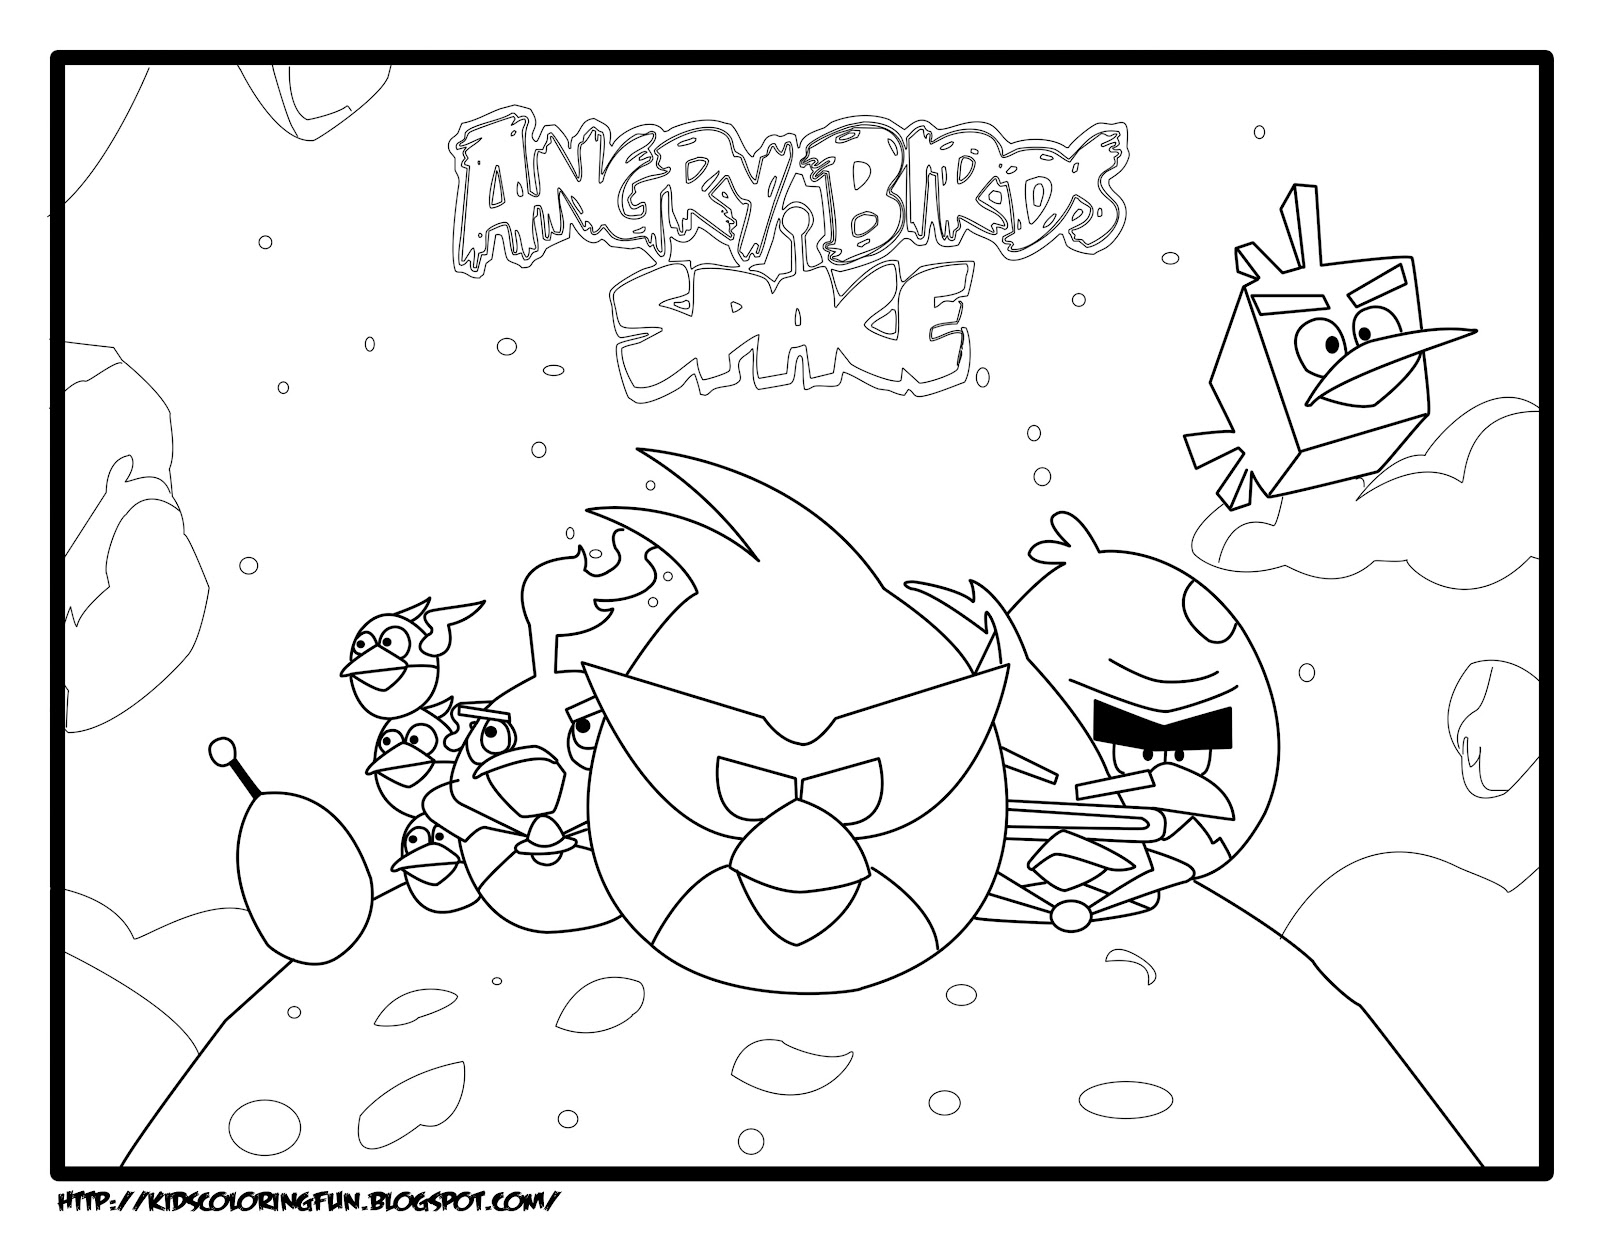 angry birds space coloring page - angry birds coloring pages pdf